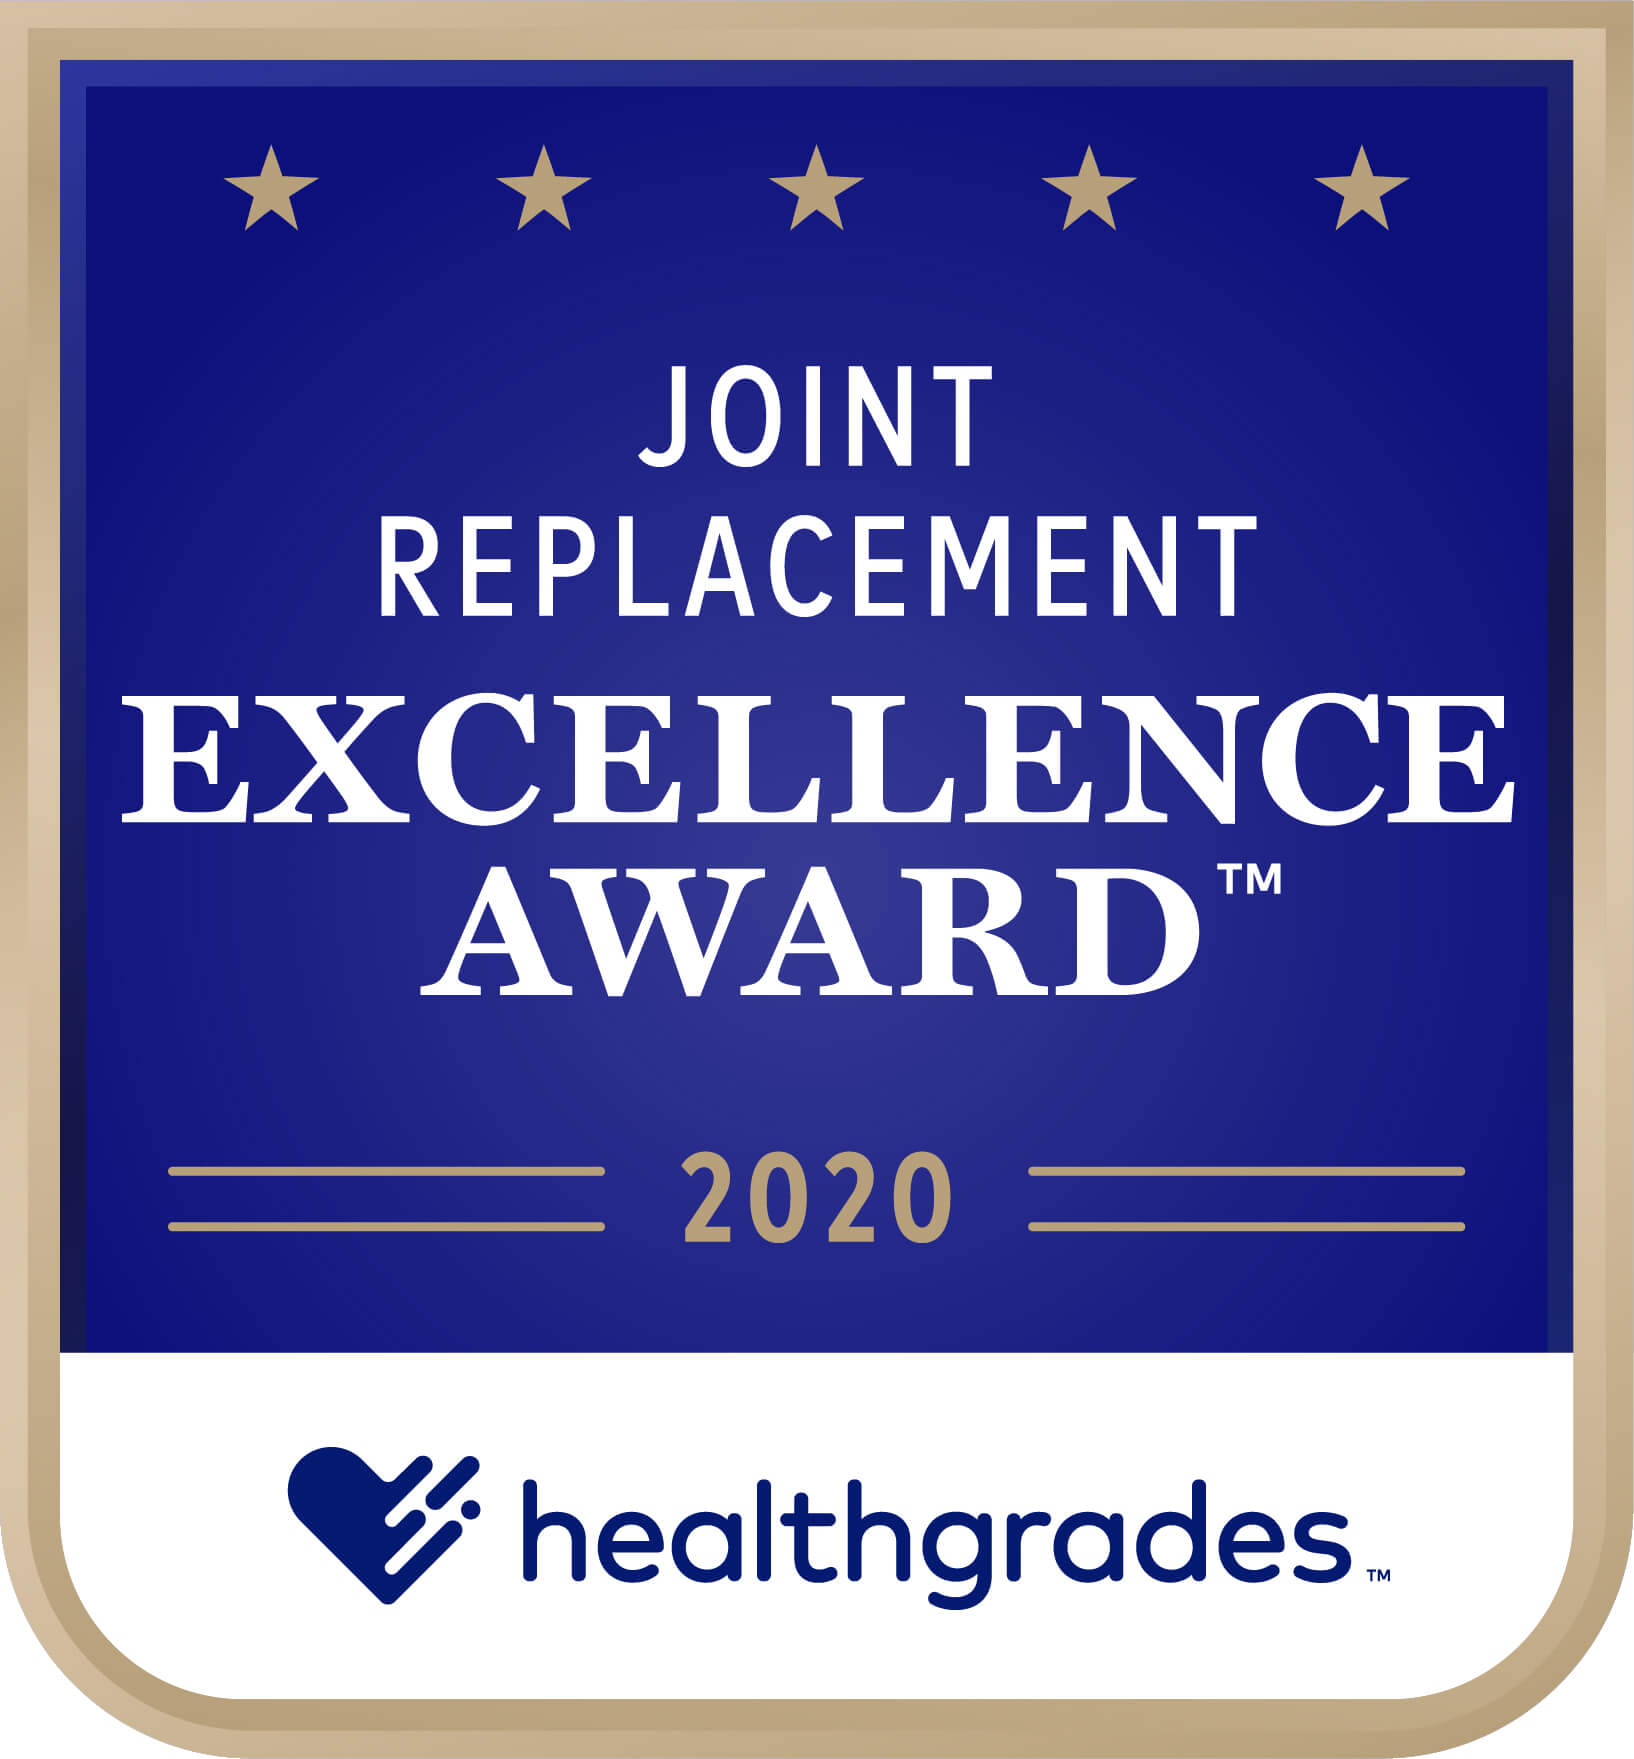 Healthgrades Excellence Award for Joint Replacement 2020